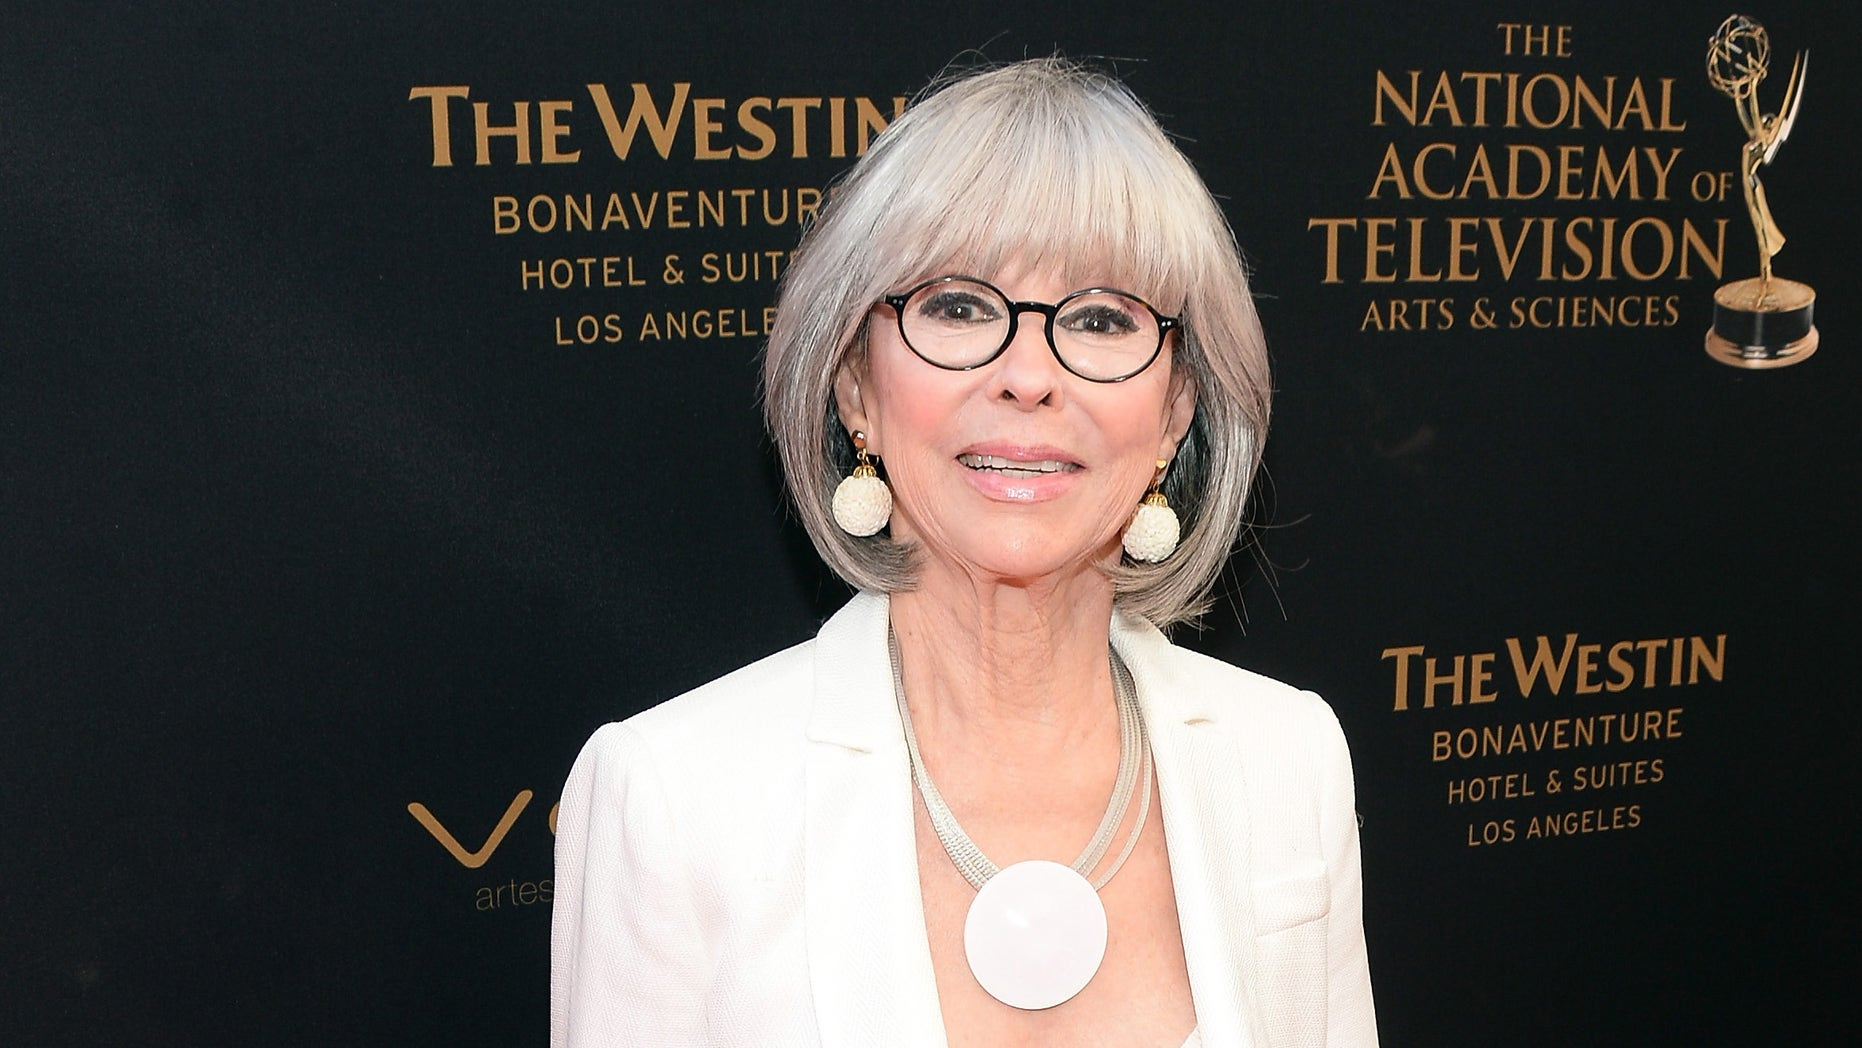 Actress Rita Moreno at the Westin Bonaventure Hotel on May 1, 2016 in Los Angeles, California.